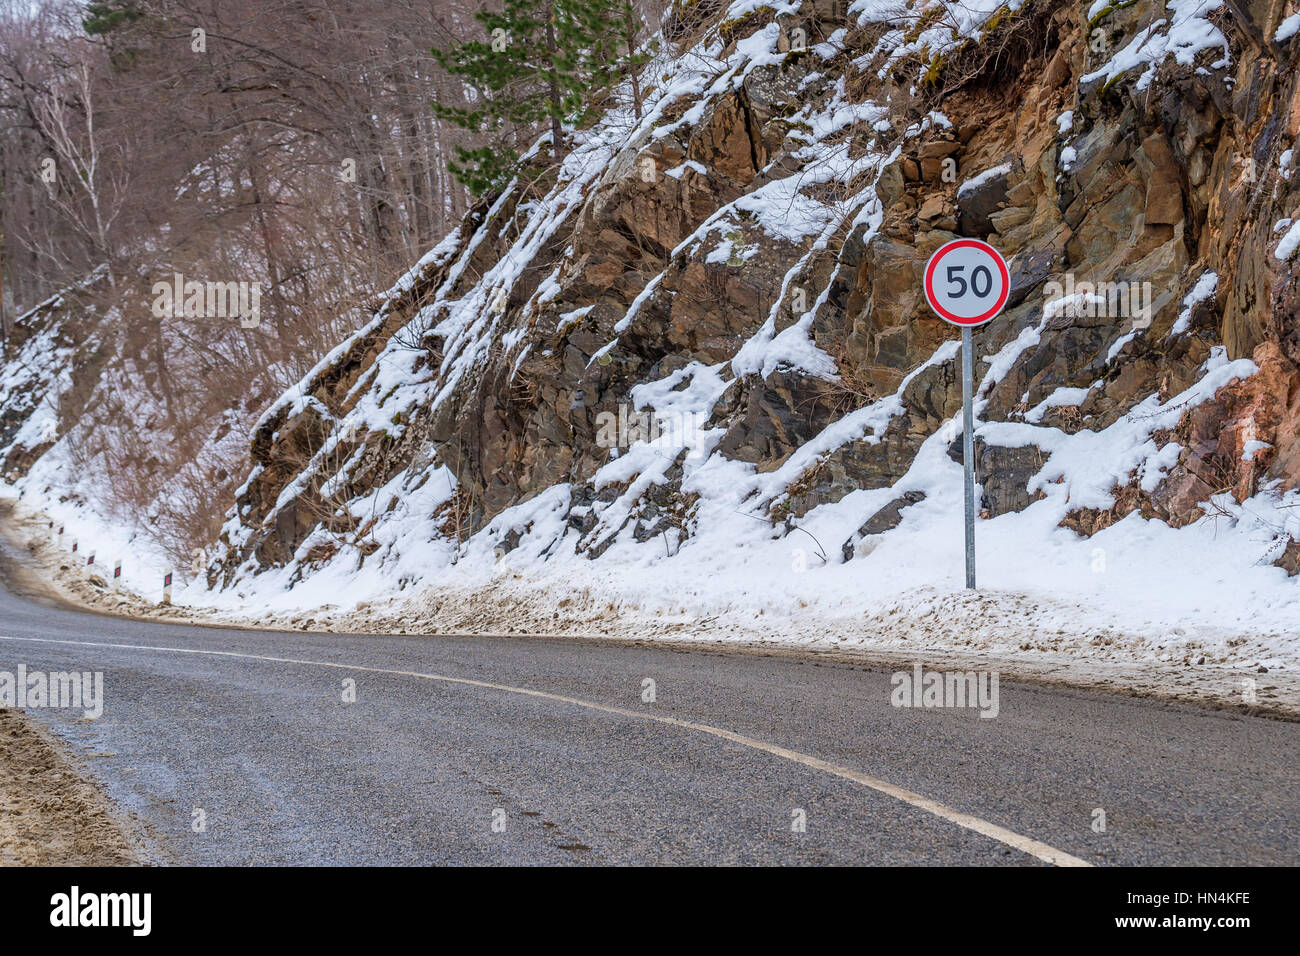 Round road sign limiting speed up to 50 km per hour on mountain road in winter warning about danger curve on slippery - Stock Image